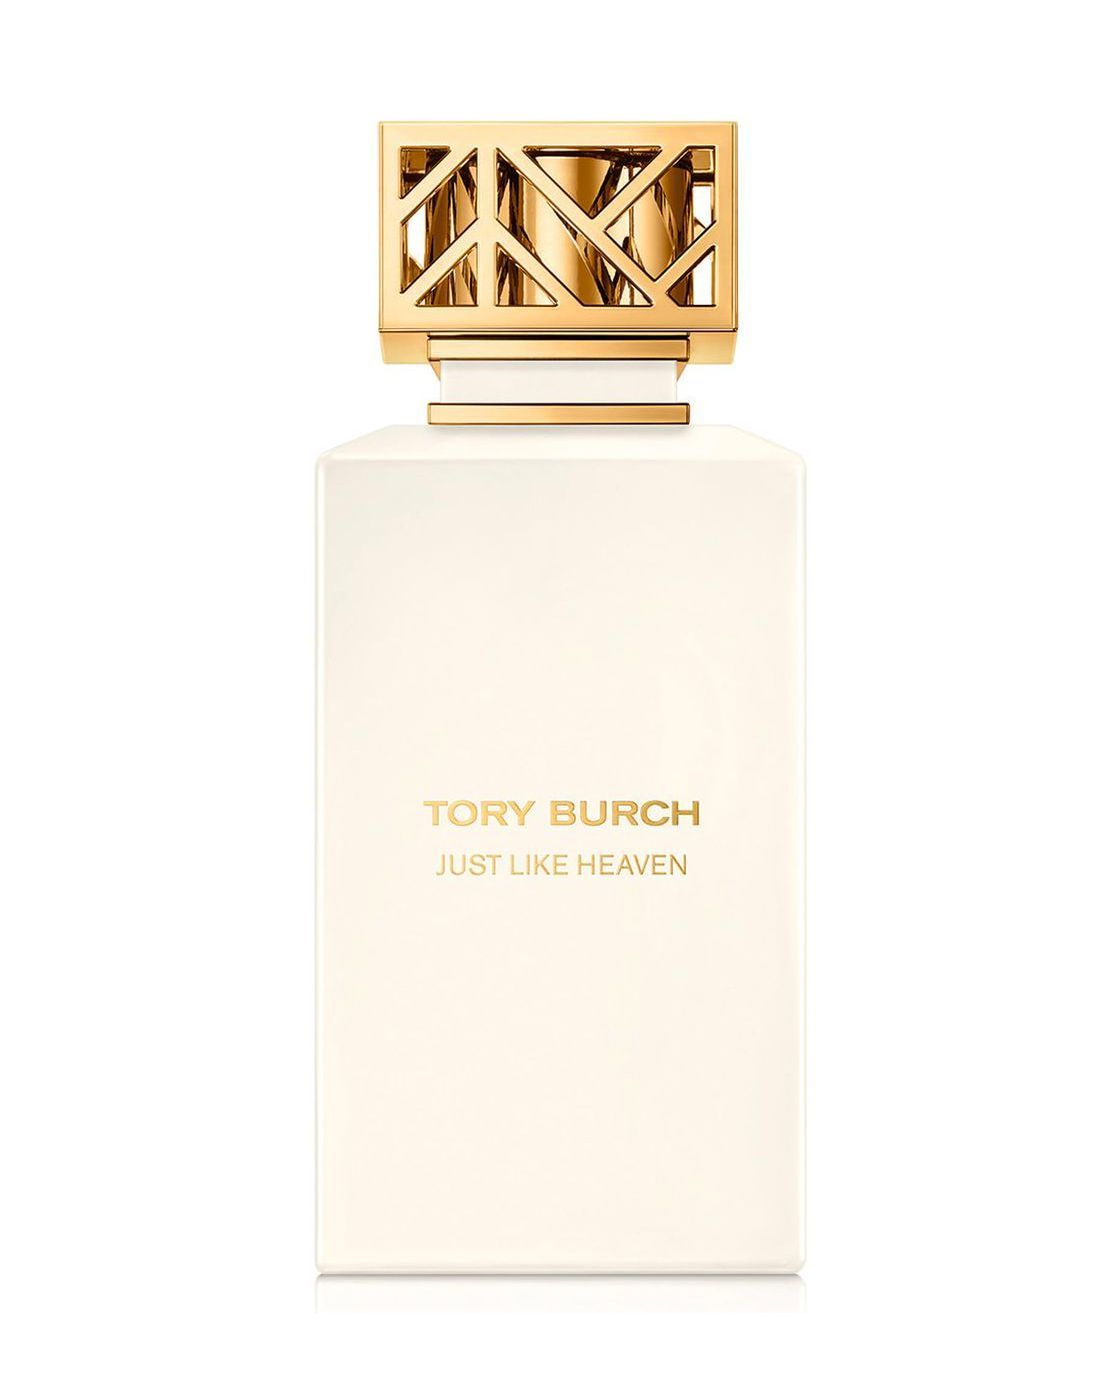 For the One Who Buys Fresh Flowers Weekly Just Like Heaven Extrait de Parfum Tory Burch nordstrom.com $108.00 SHOP NOW If you're into florals, Tory Burch's Just Like Heaven is a necessary addition to your collection. The notes of hyacinth, heliotrope, and tonka bean are intoxicating—and leave you feeling sentimental, not unlike a bouquet from a beloved.